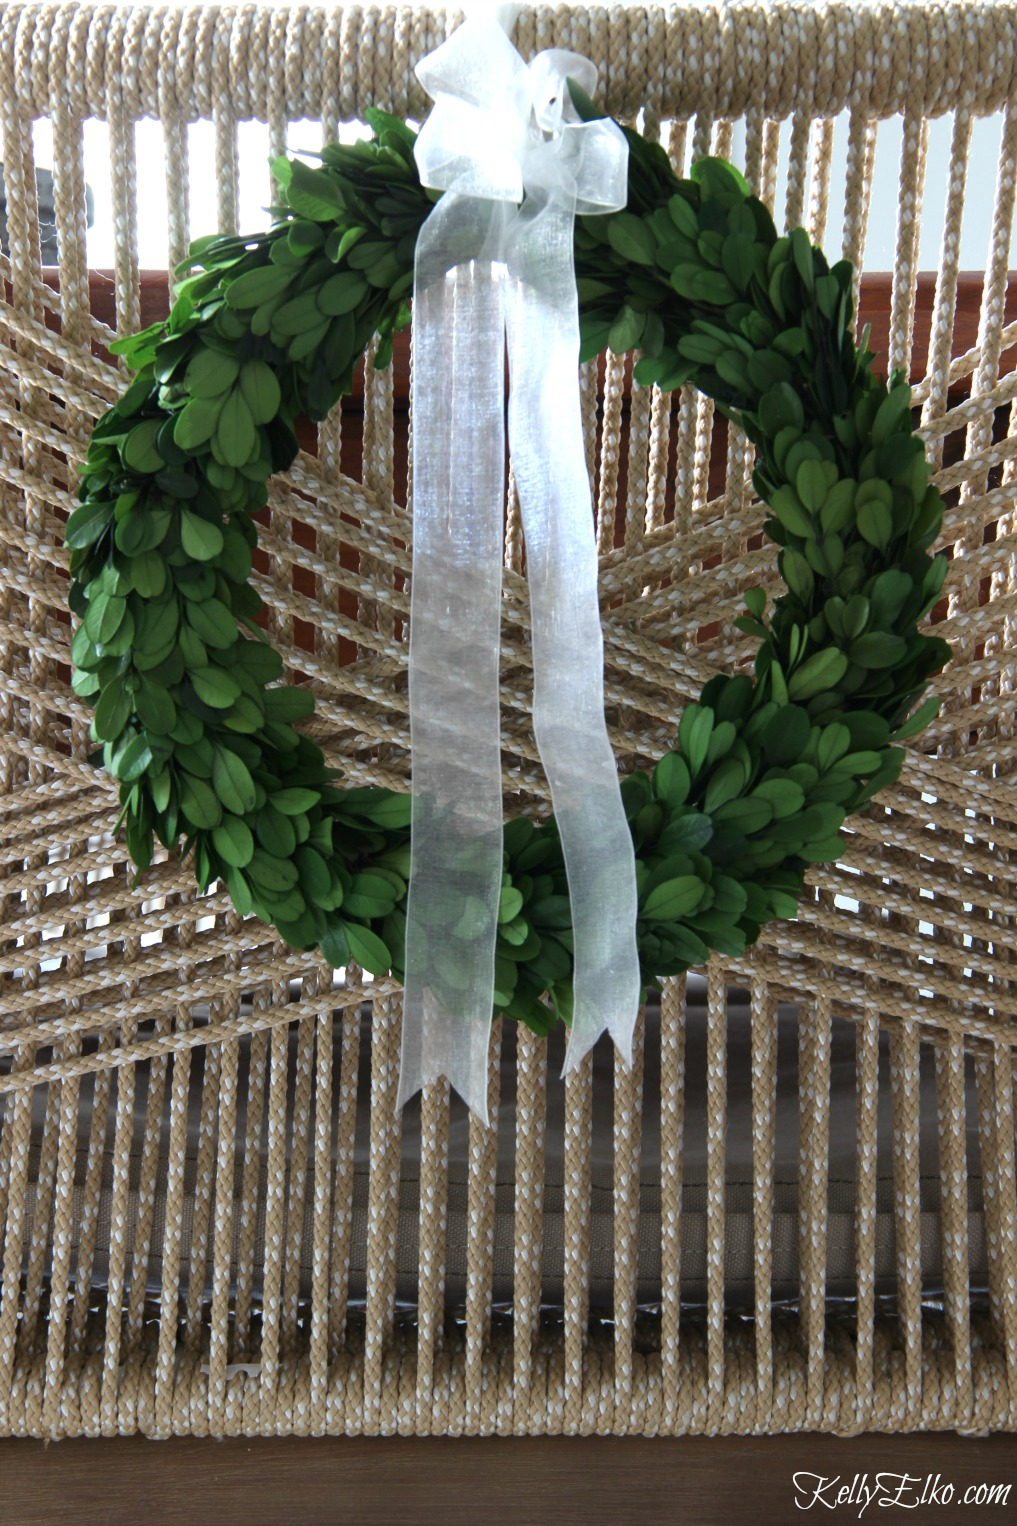 Tie preserved boxwood wreaths on back of chairs for the holidays kellyelko.com